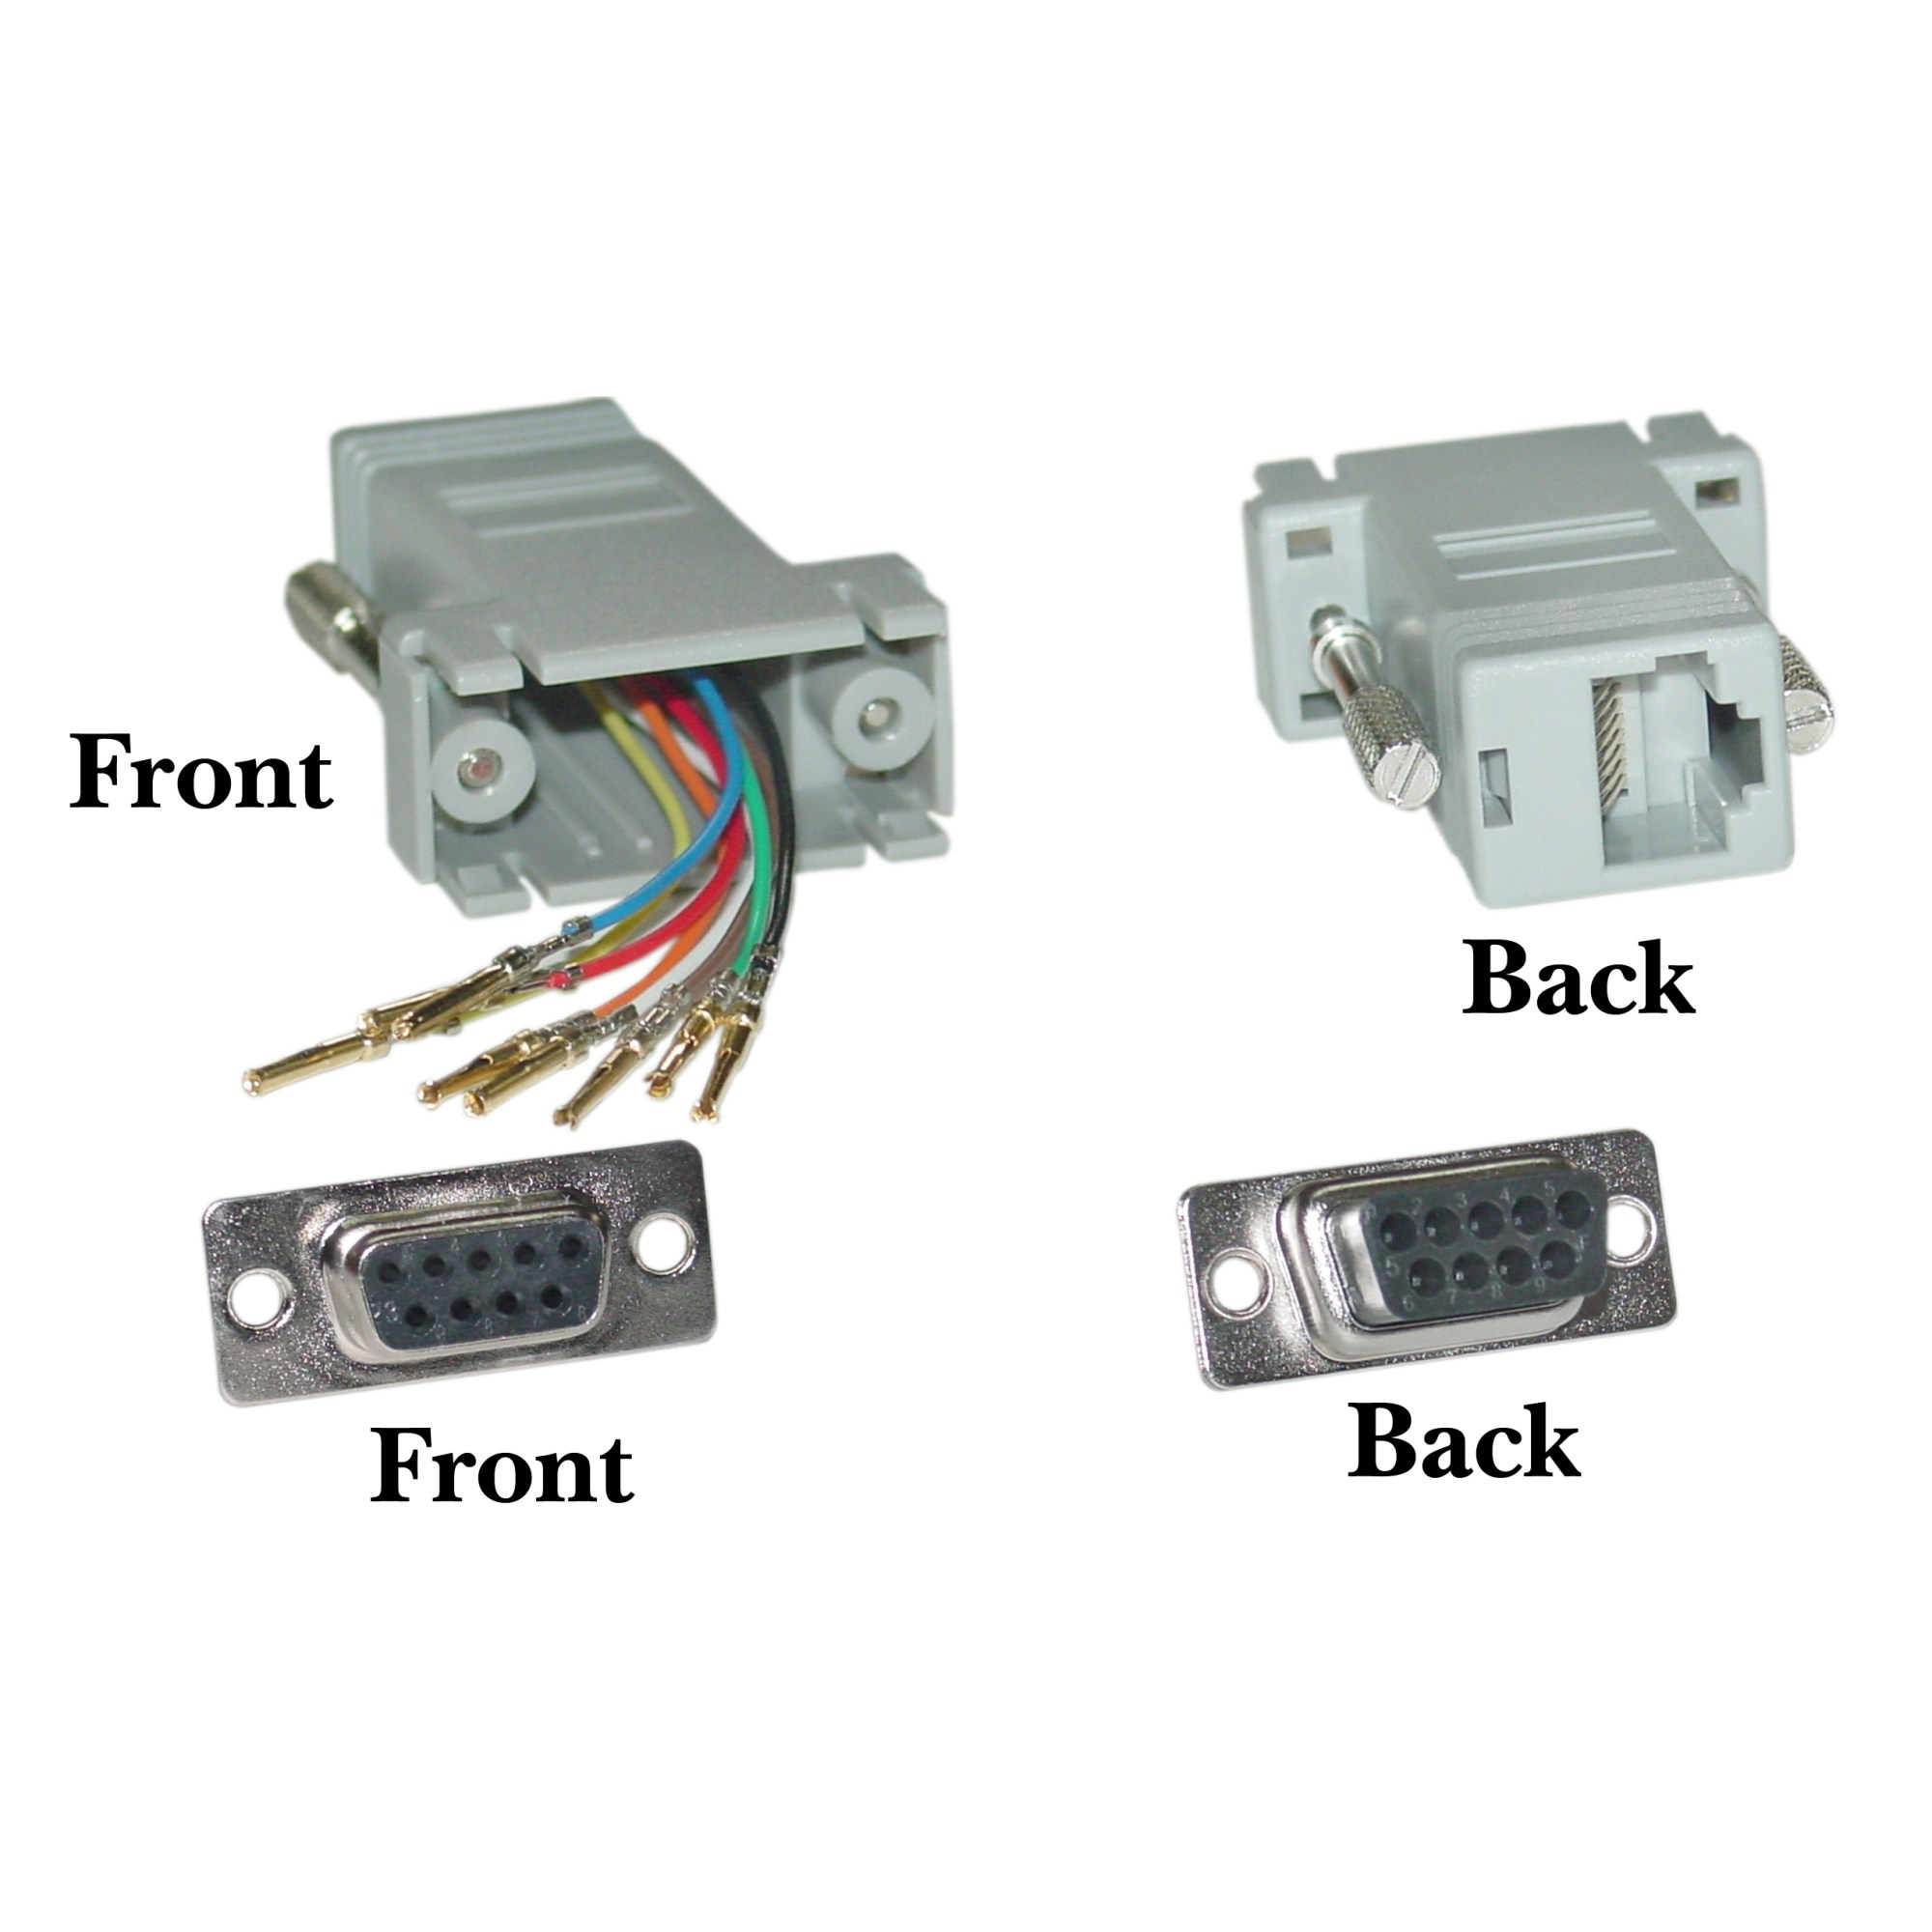 hight resolution of ethernet to db9 wiring diagram trusted wiring diagram rs232 to rj45 pinout db9 female to rj45